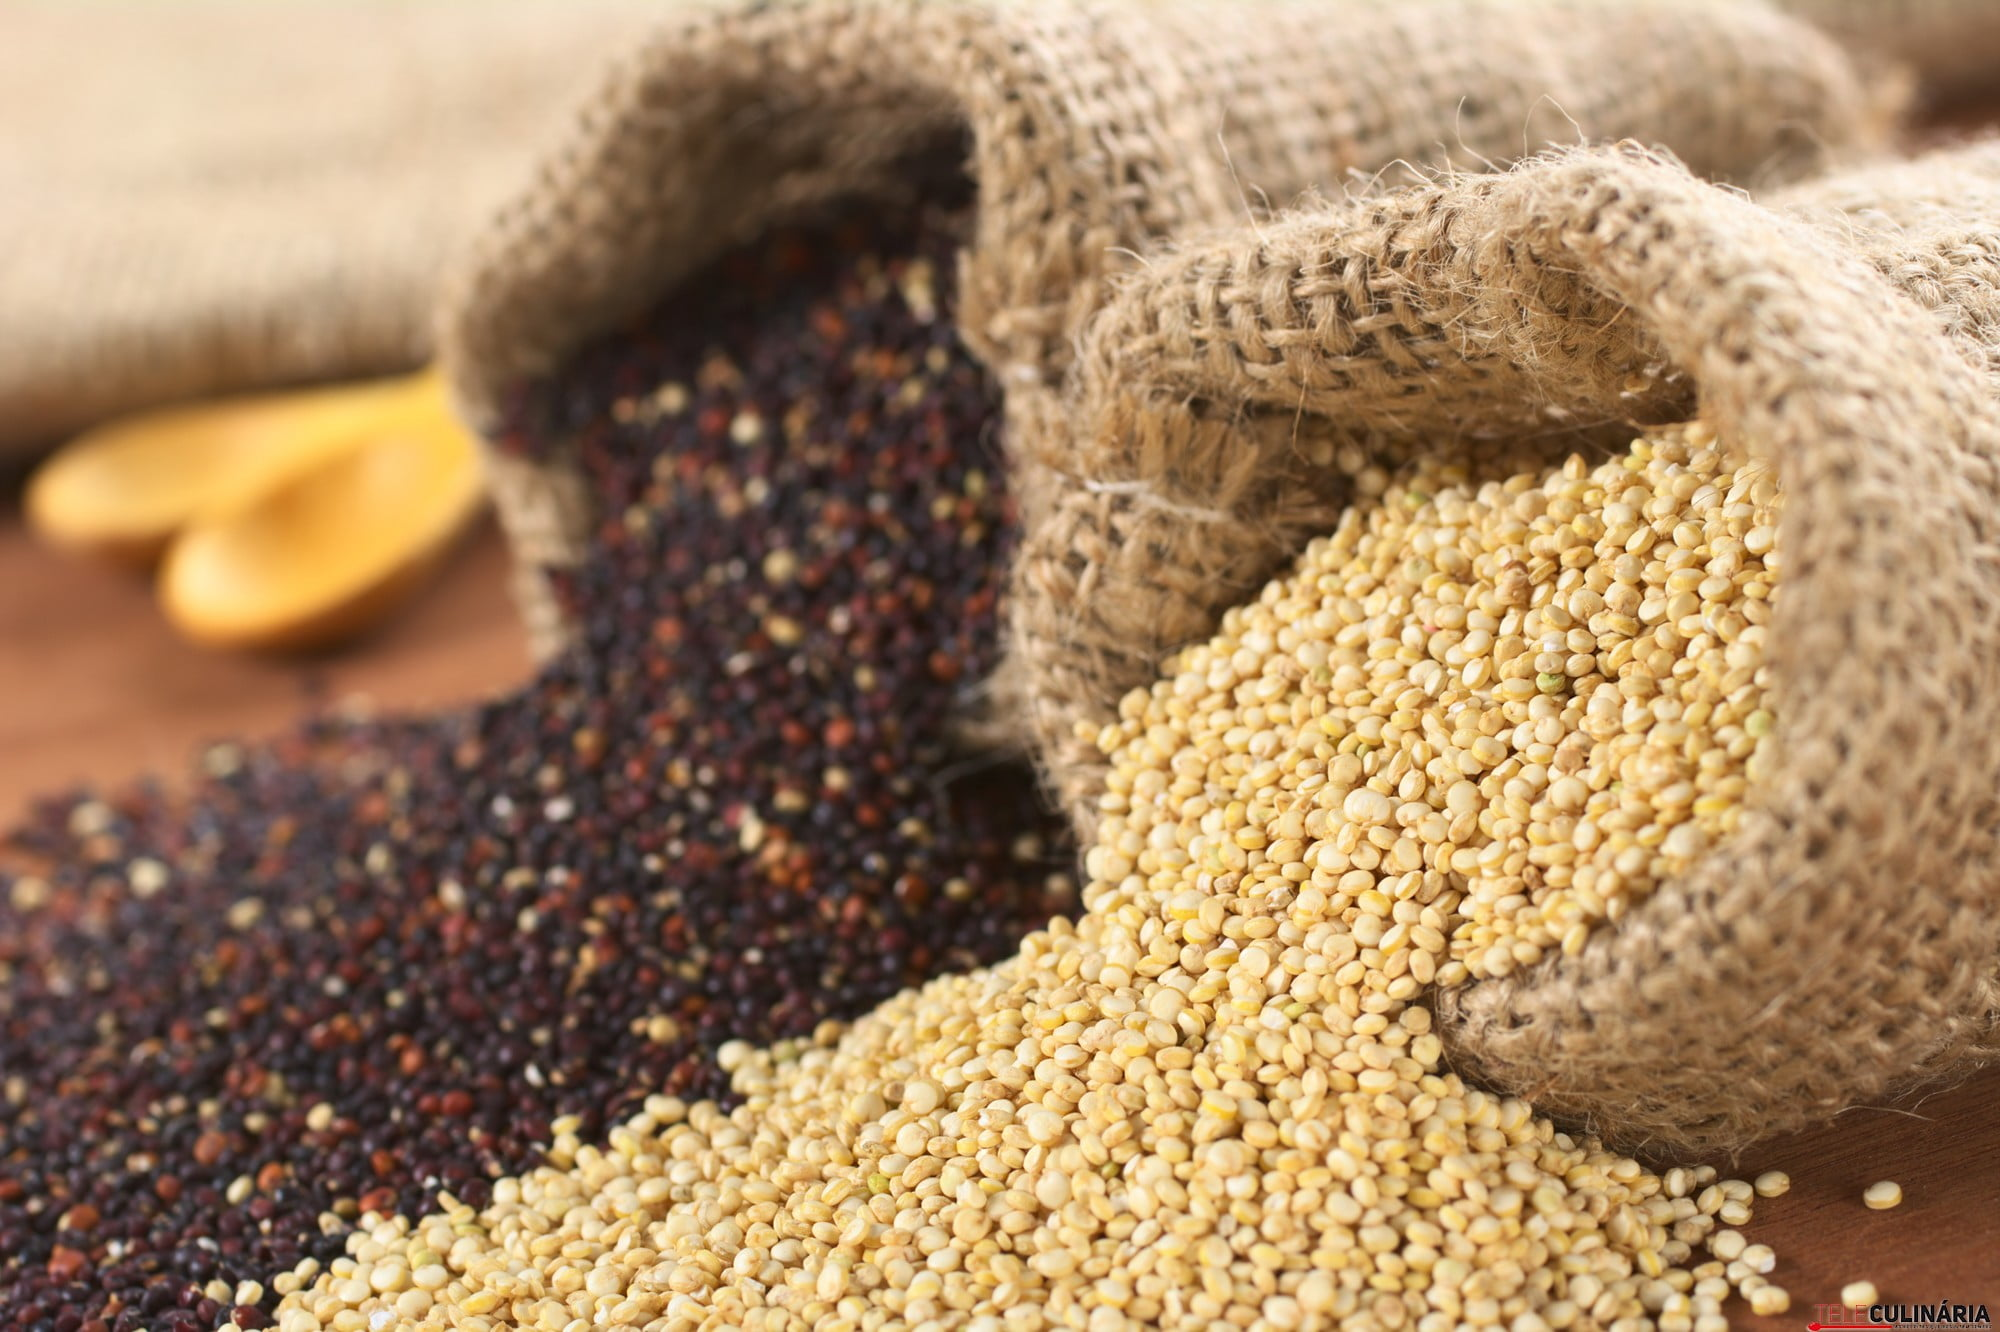 Raw red and white quinoa grains in jute sack on wood. Quinoa is grown in the Andes region and has a high protein content and a high nutritional value (Selective Focus, Focus on the white quinoa grains at the sack opening)